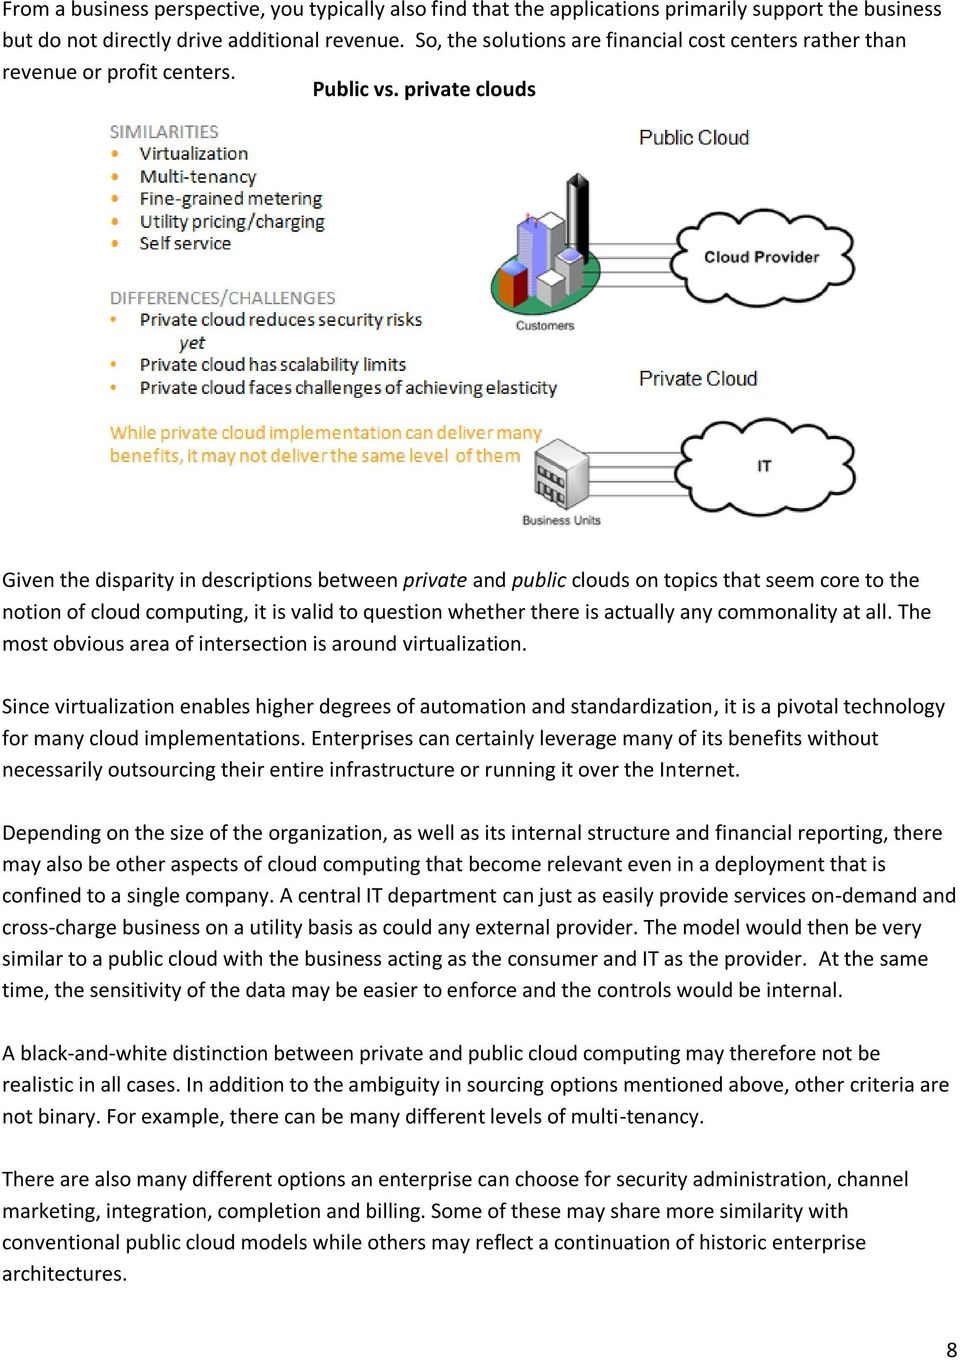 private clouds Given the disparity in descriptions between private and public clouds on topics that seem core to the notion of cloud computing, it is valid to question whether there is actually any